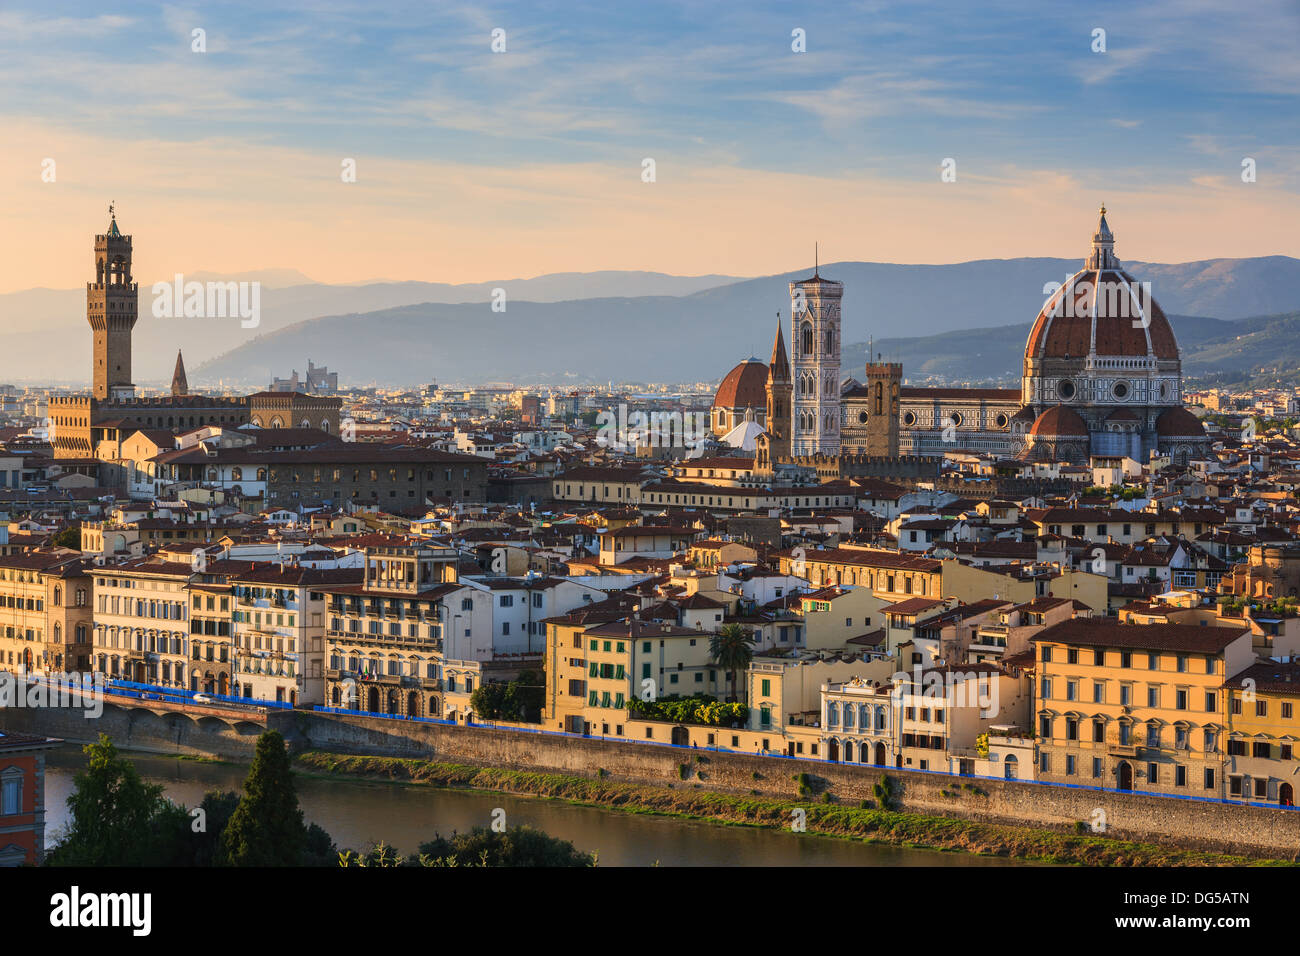 View over Florence with Palazzo Vecchio and Basilica di Santa Maria del Fiore. Taken from Piazzale Michelangelo - Stock Image